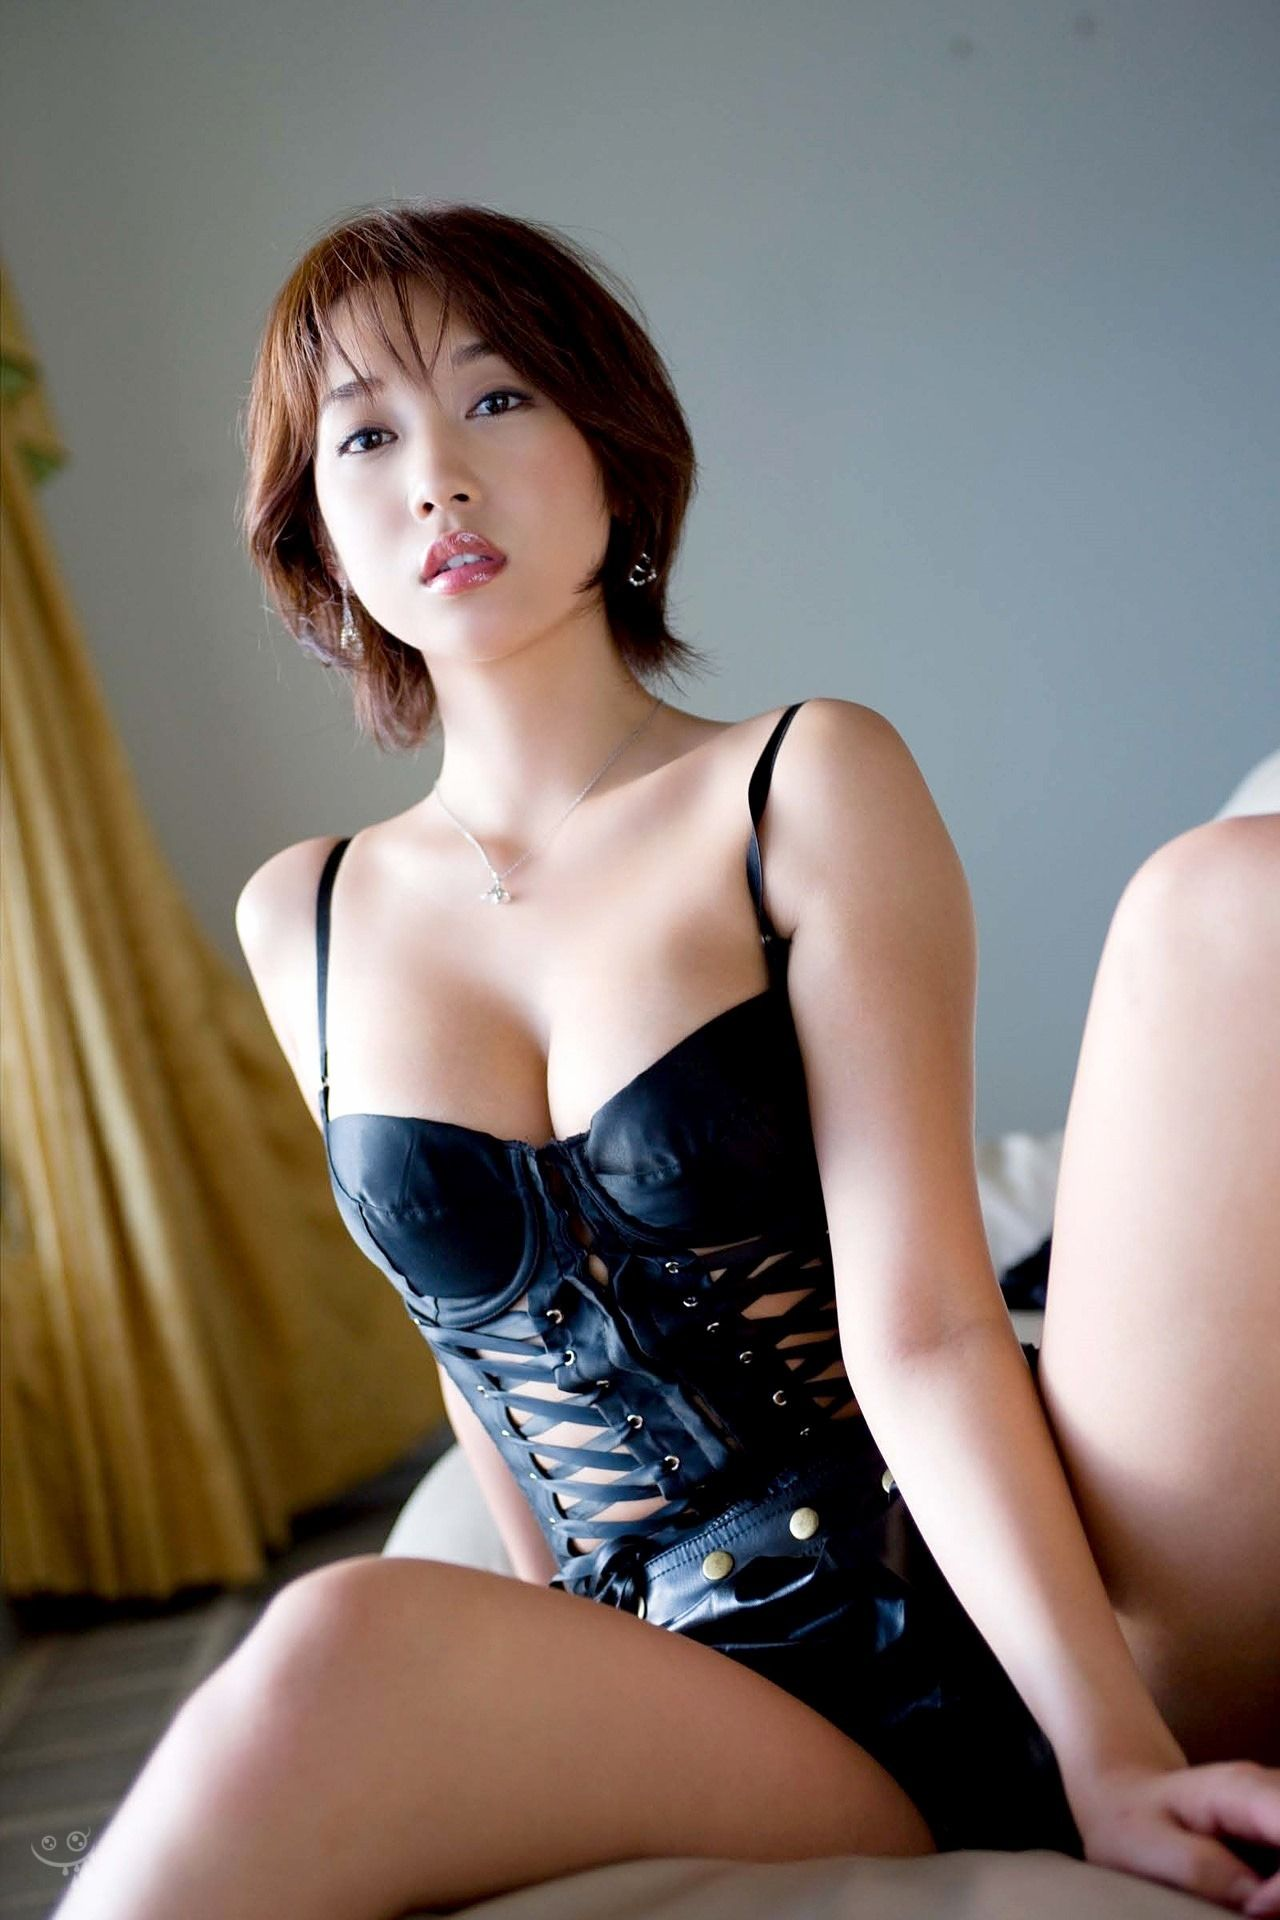 Japanese fetish and melanie | Erotic gallery)